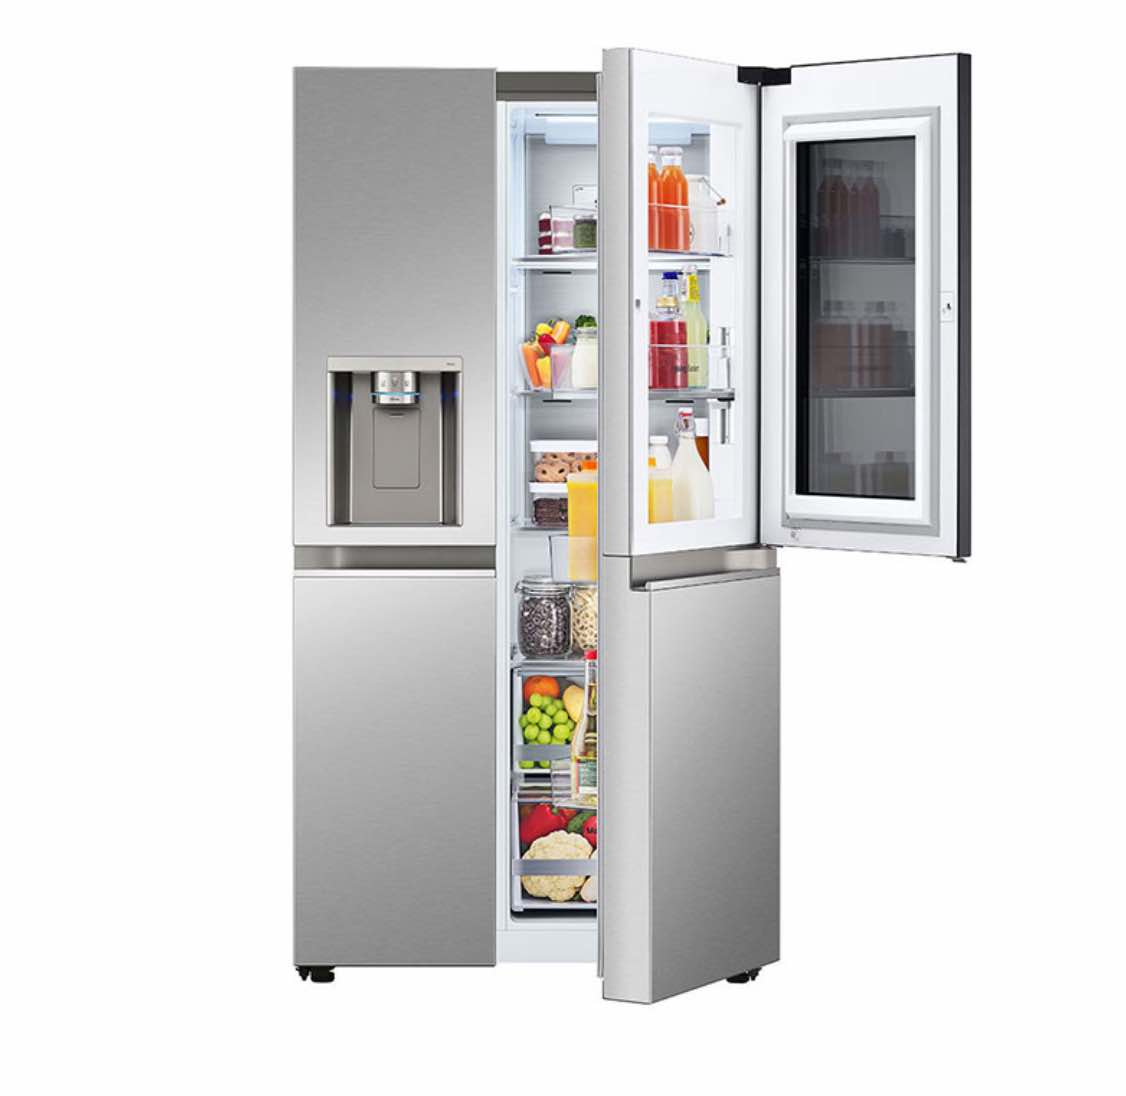 LG Side By Side InstaView Refrigerator